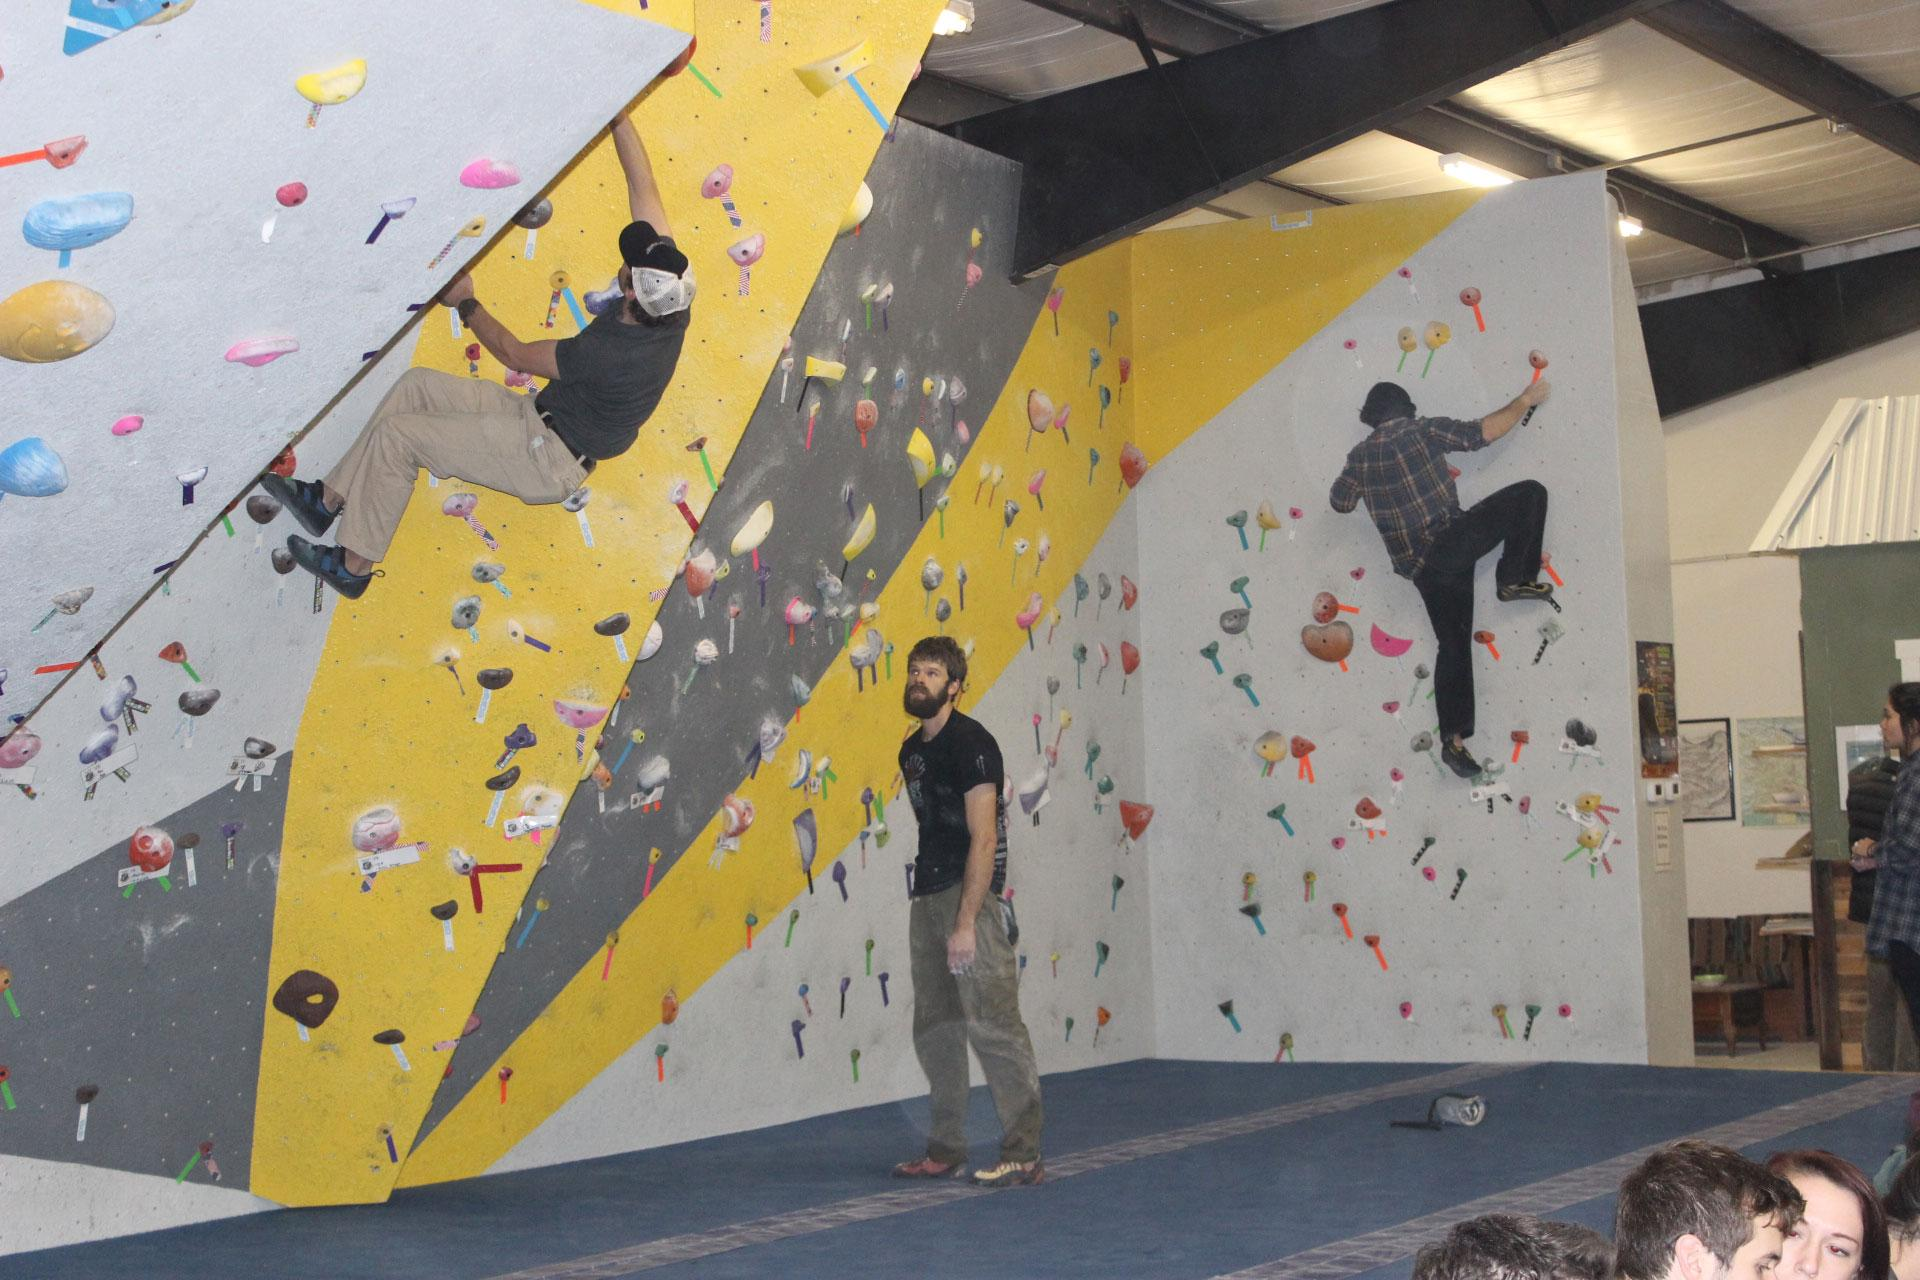 Center 45, a new rock climbing and fitness center, held its grand opening on Saturday. The center was created in an effort to provide a space for individuals to practice bouldering and encourage responsible bouldering in the Boone area.